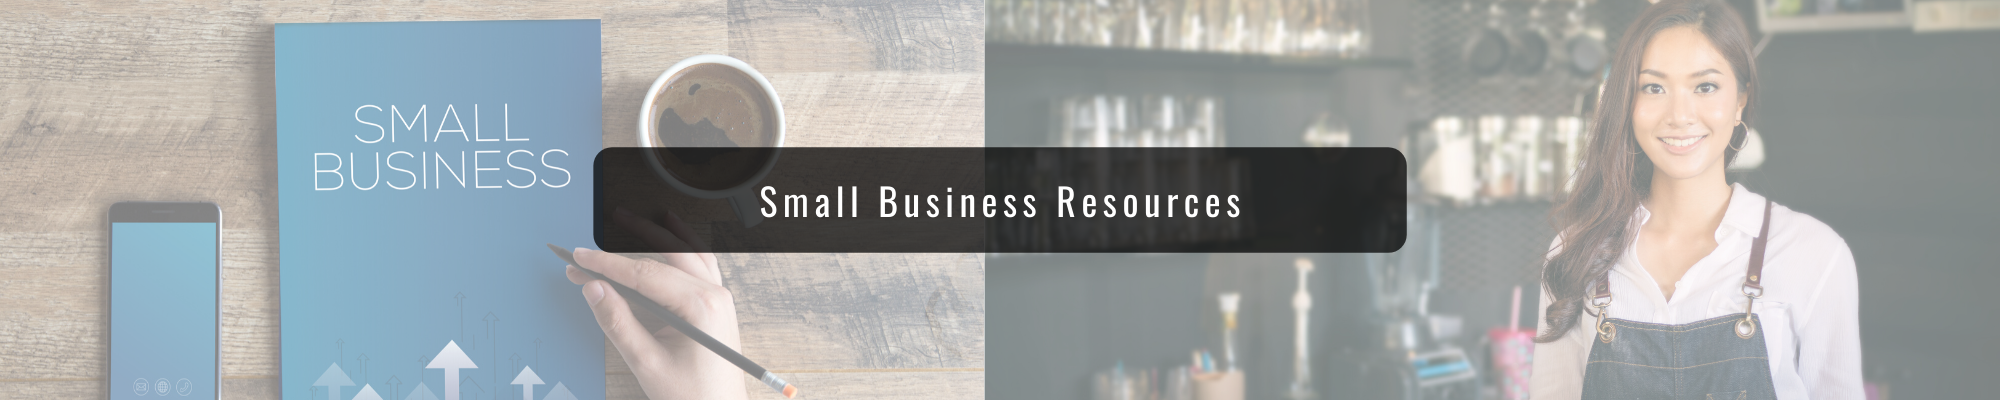 Small Business Resources